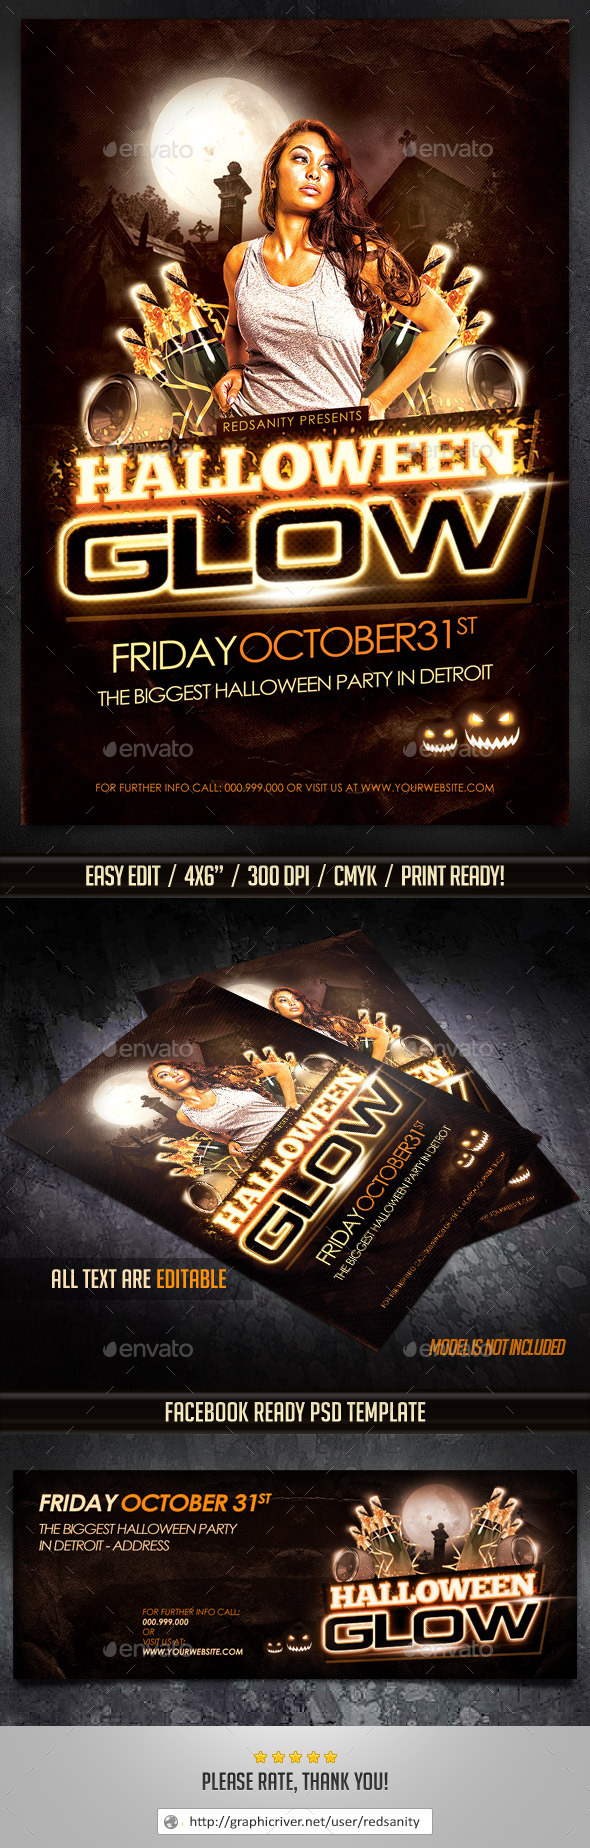 GraphicRiver Halloween Glow Flyer Plus FB Cover 8975983